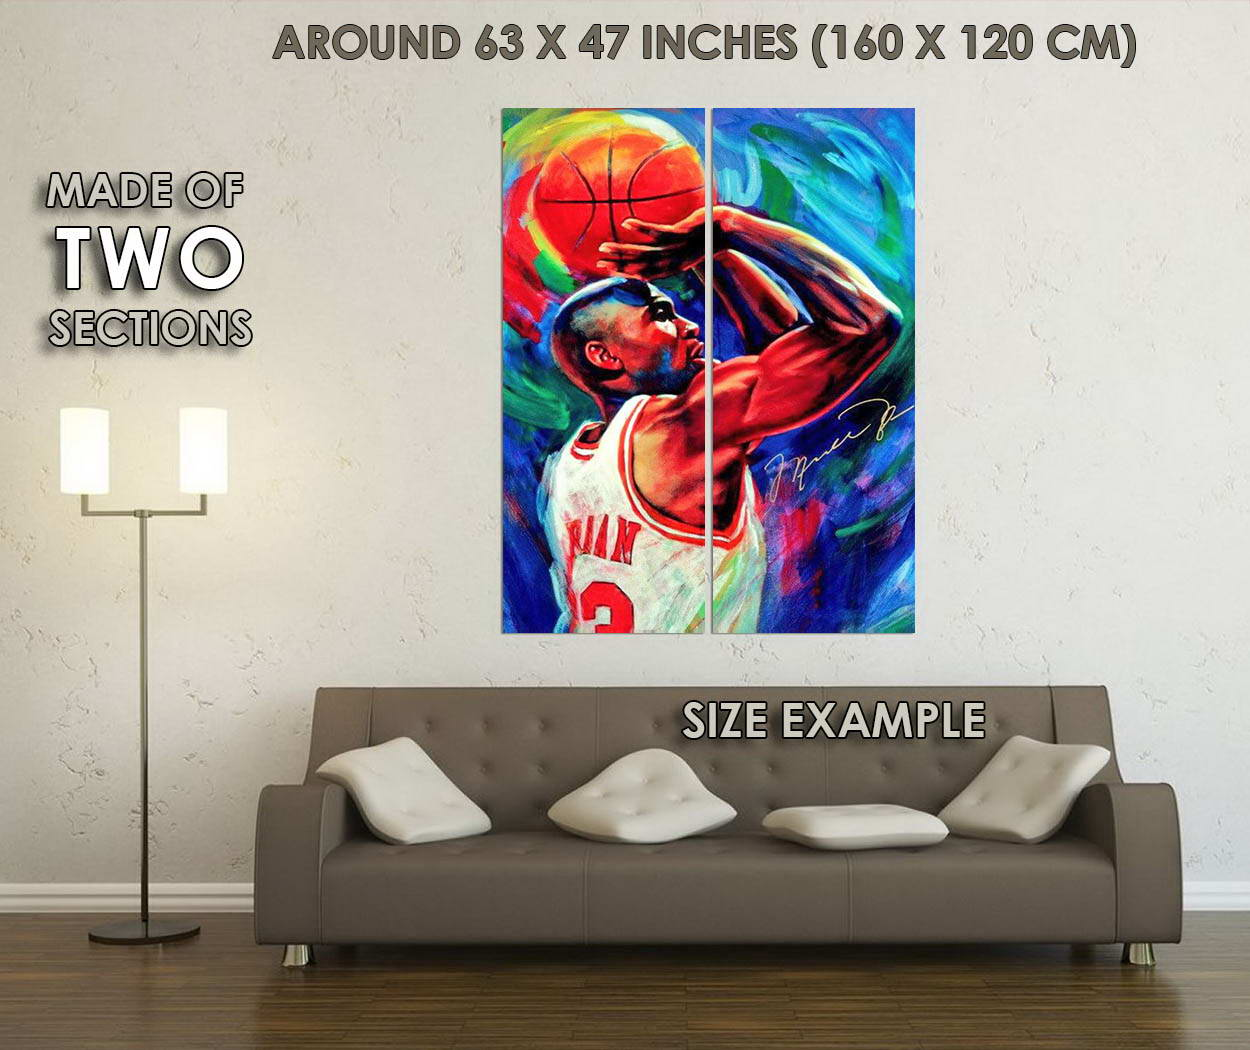 10666-Michael-Jordan-Basketball-Sports-LAMINATED-POSTER-CA thumbnail 6